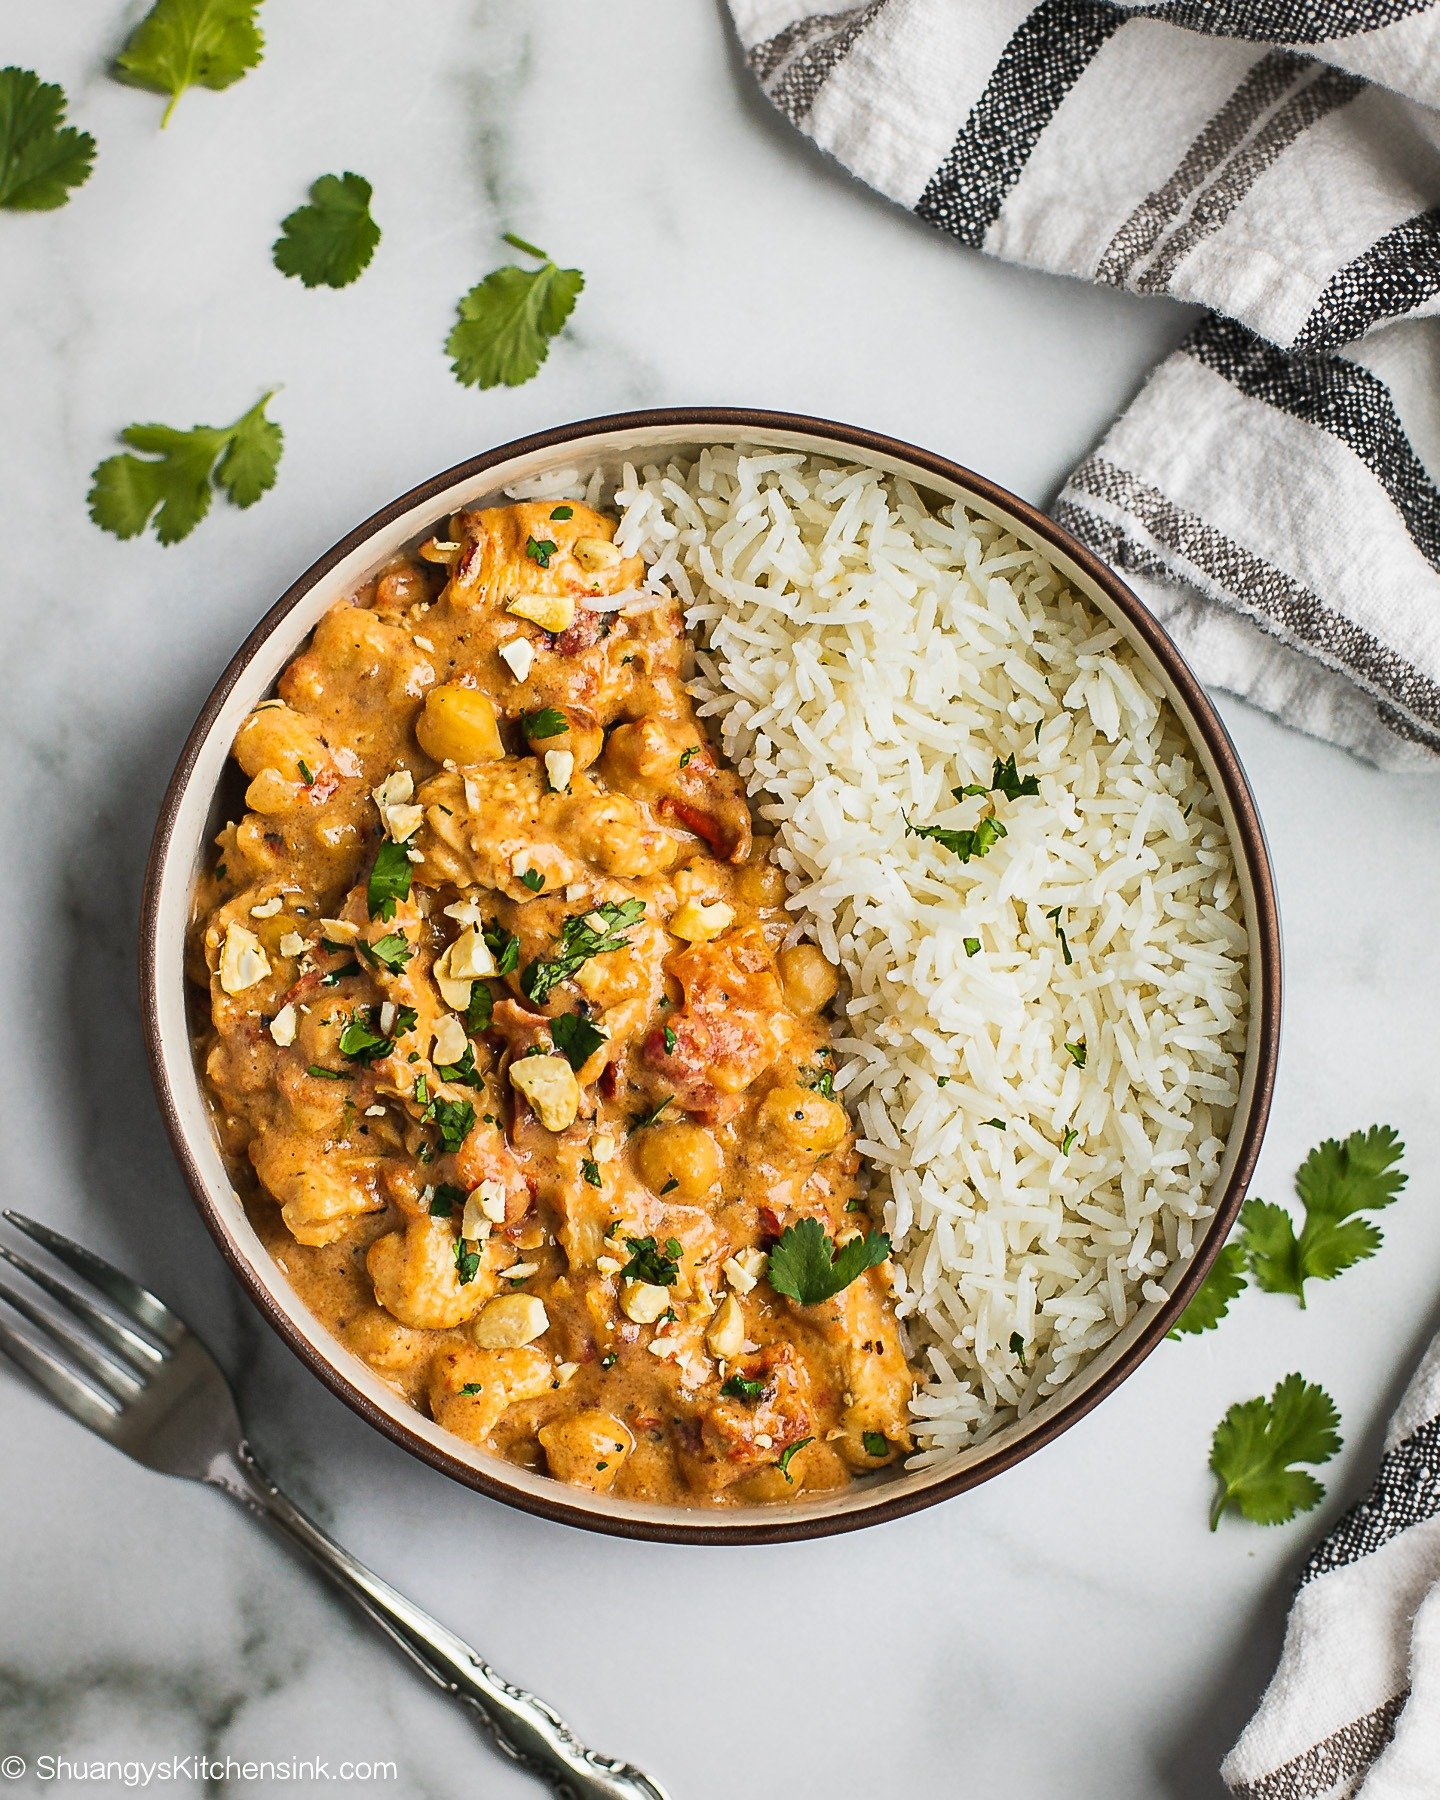 A bowl of creamy peanut butter chicken served with white rice and fresh cilantro. There are some crushed cashews on top.